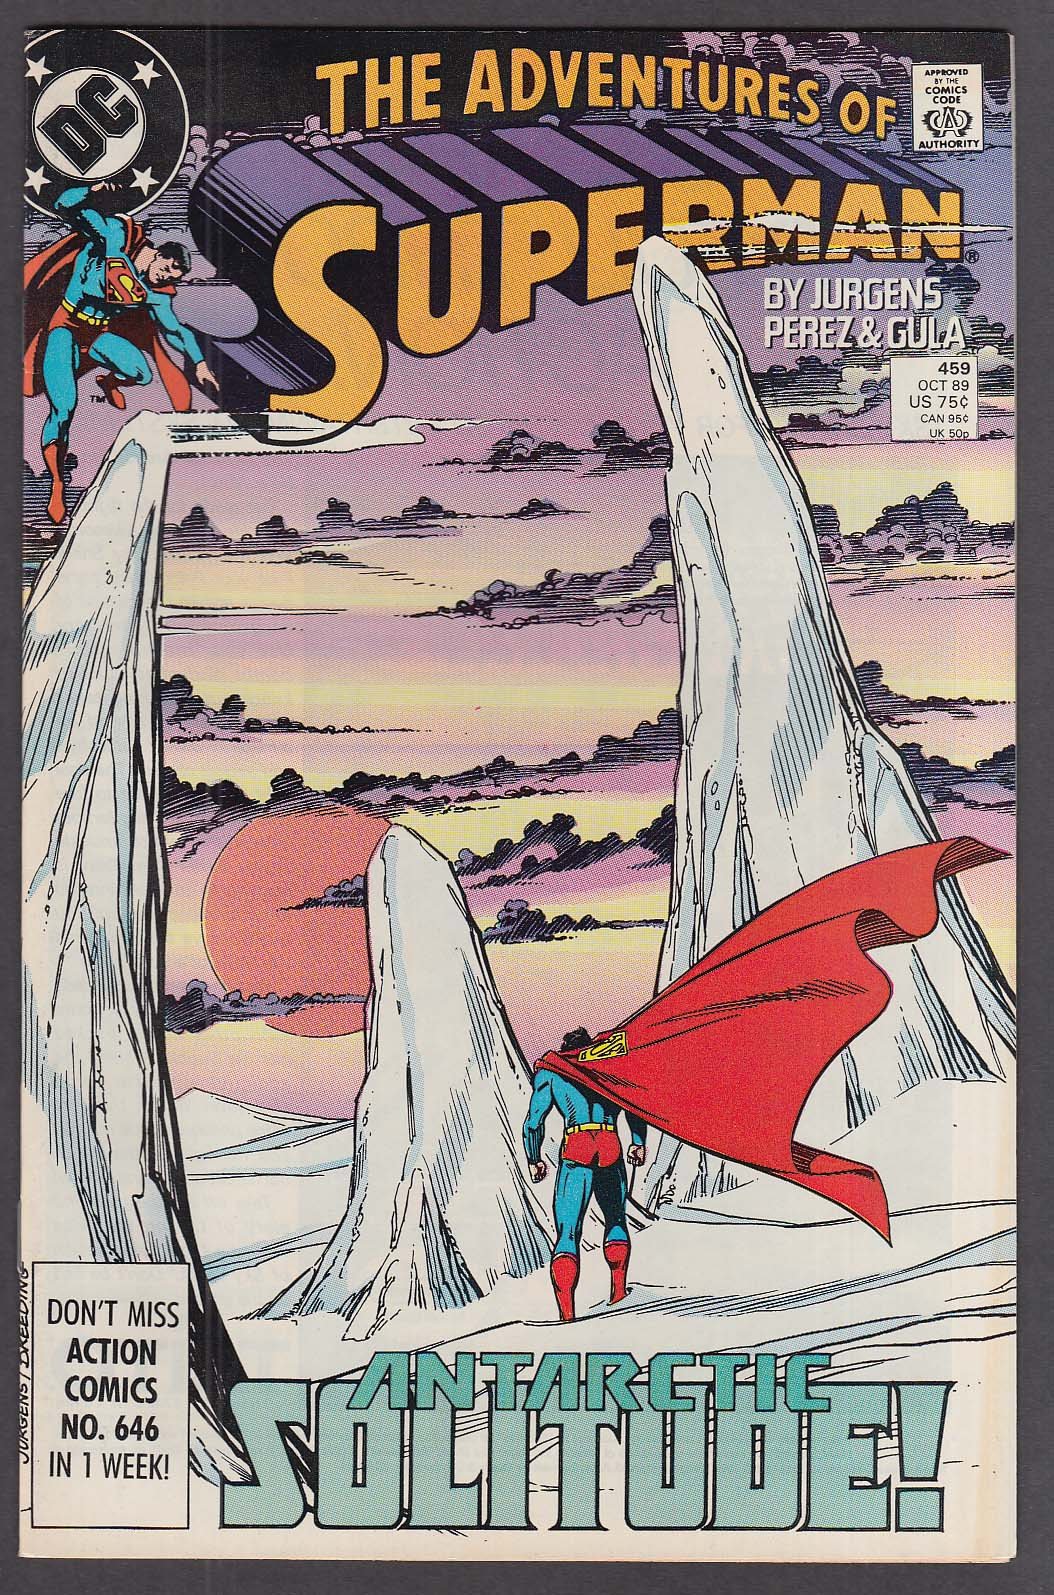 ADVENTURES of SUPERMAN #459 DC comic book 10 1989